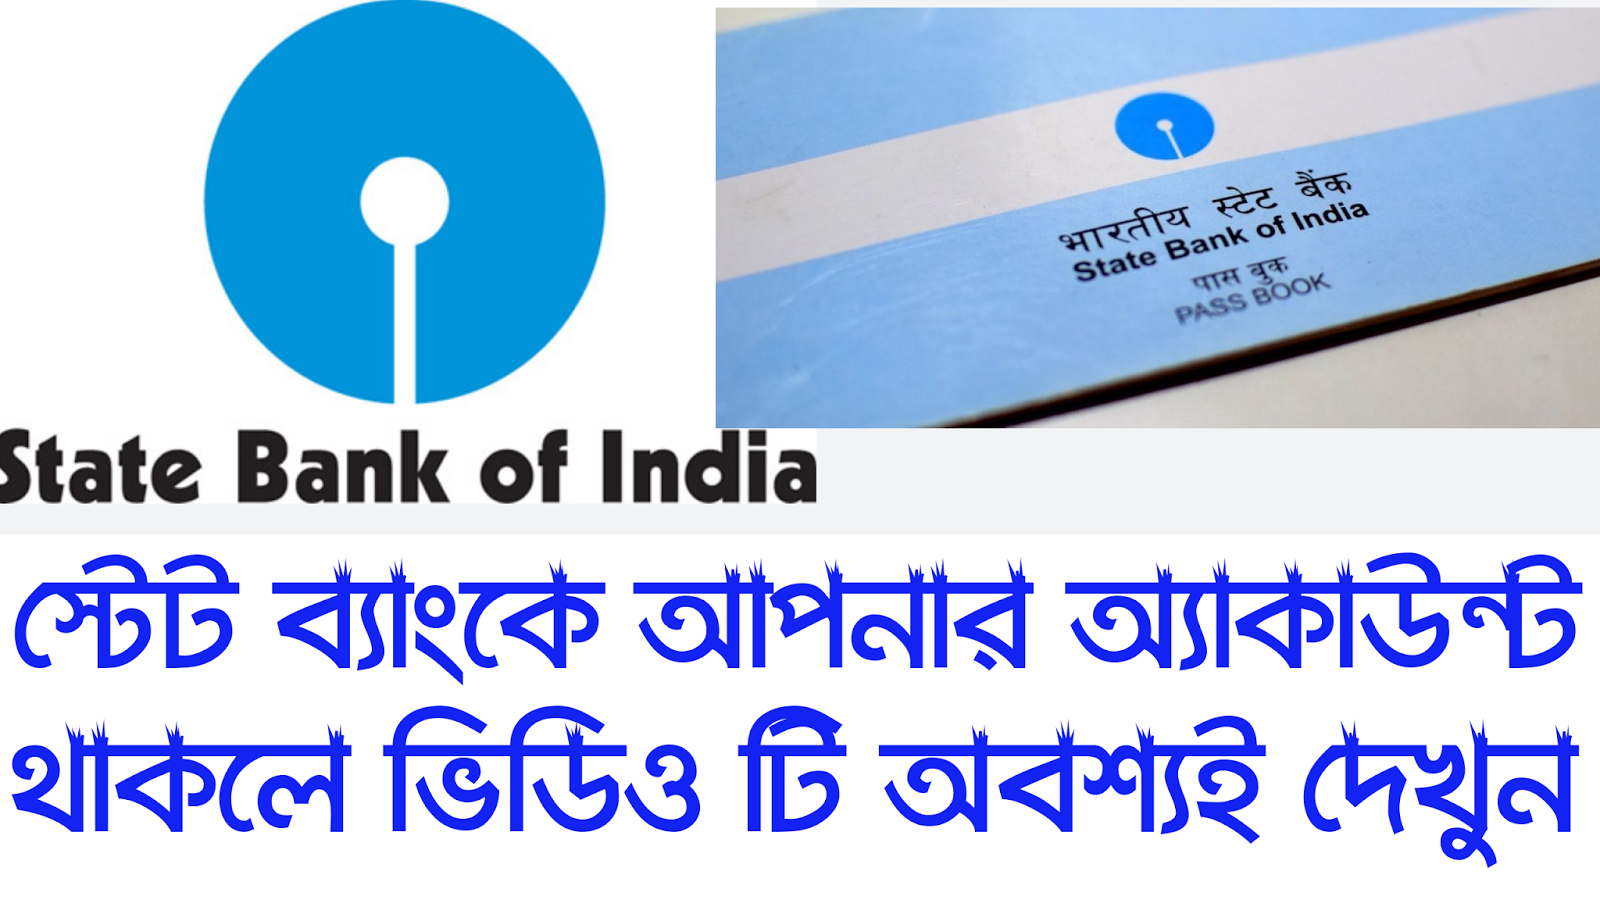 SBI News Today - State Bank of India, New Rules For SBI Customers, Minimum Balance